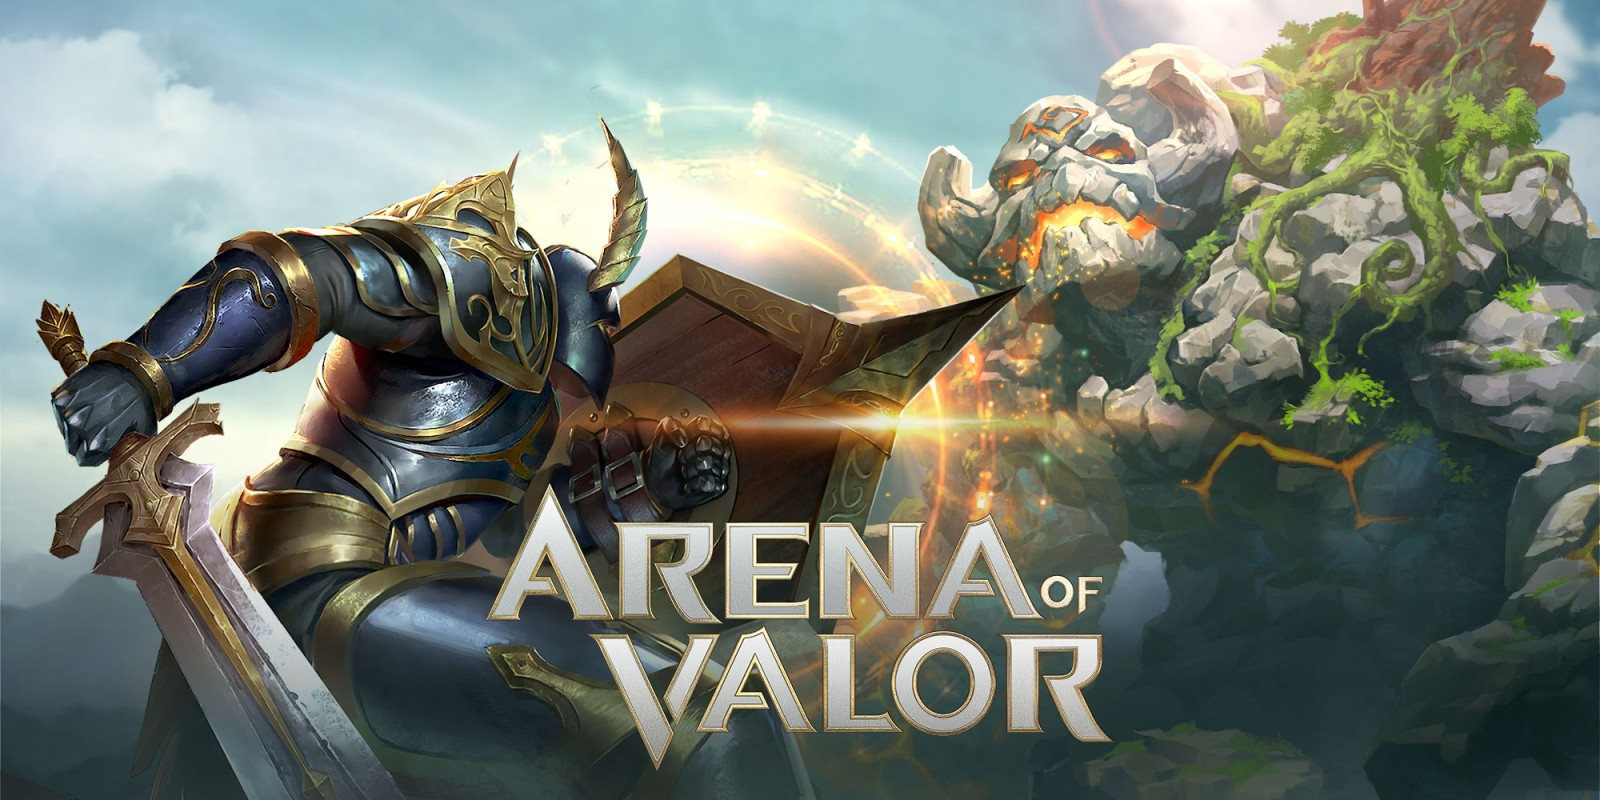 Chinese video game Arena of Valor